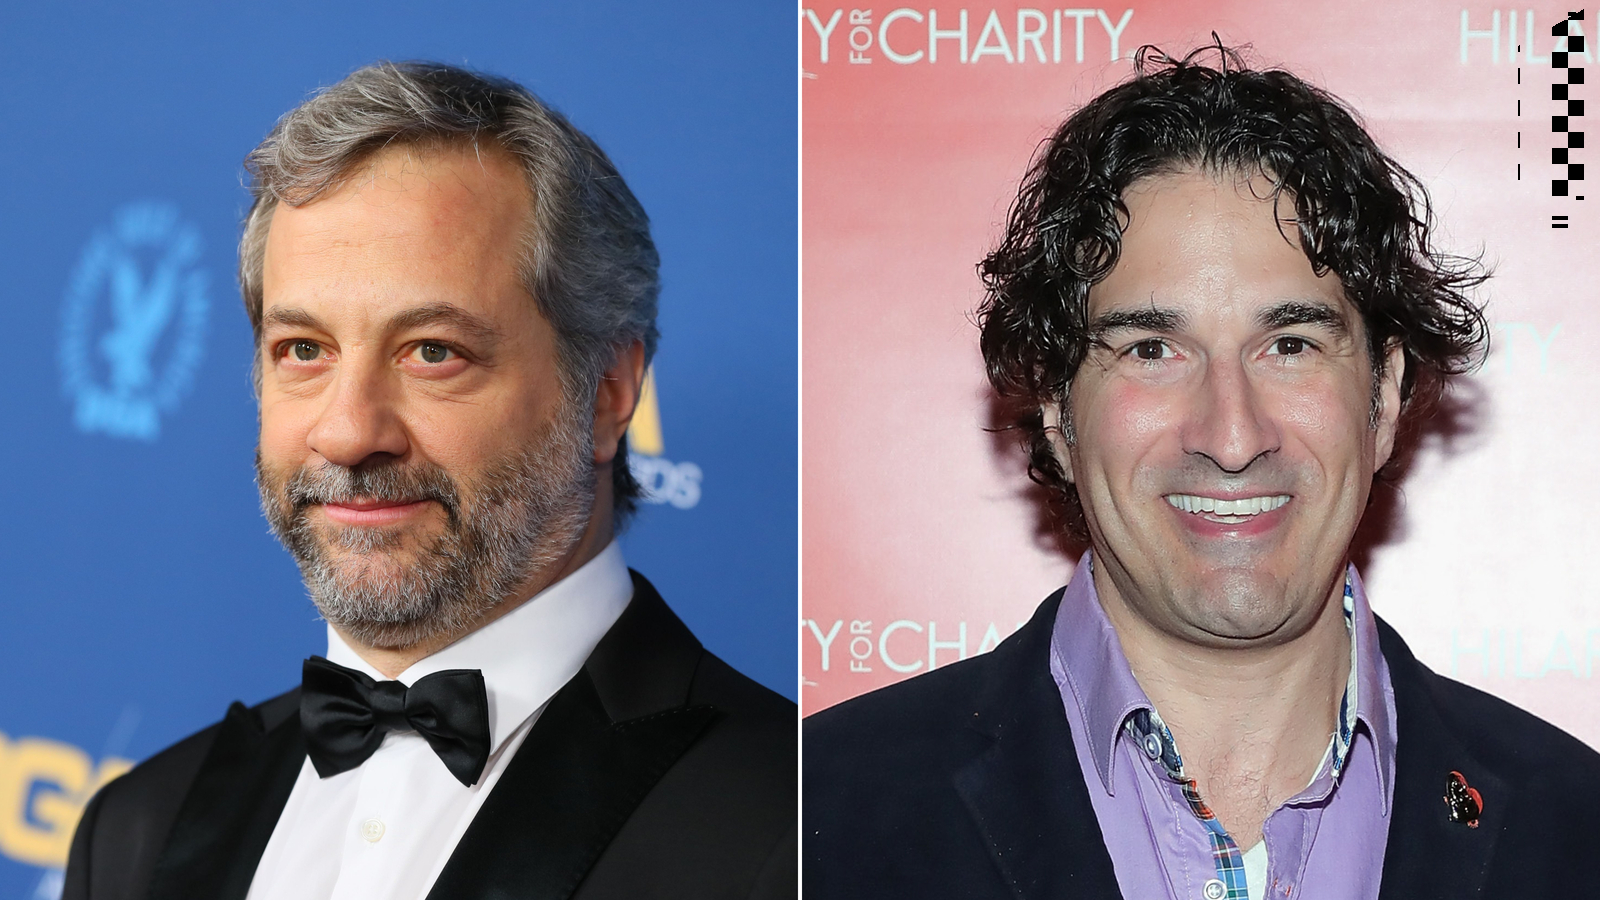 Judd Apatow and Gary Gulman get candid about their mental health and coping during the pandemic